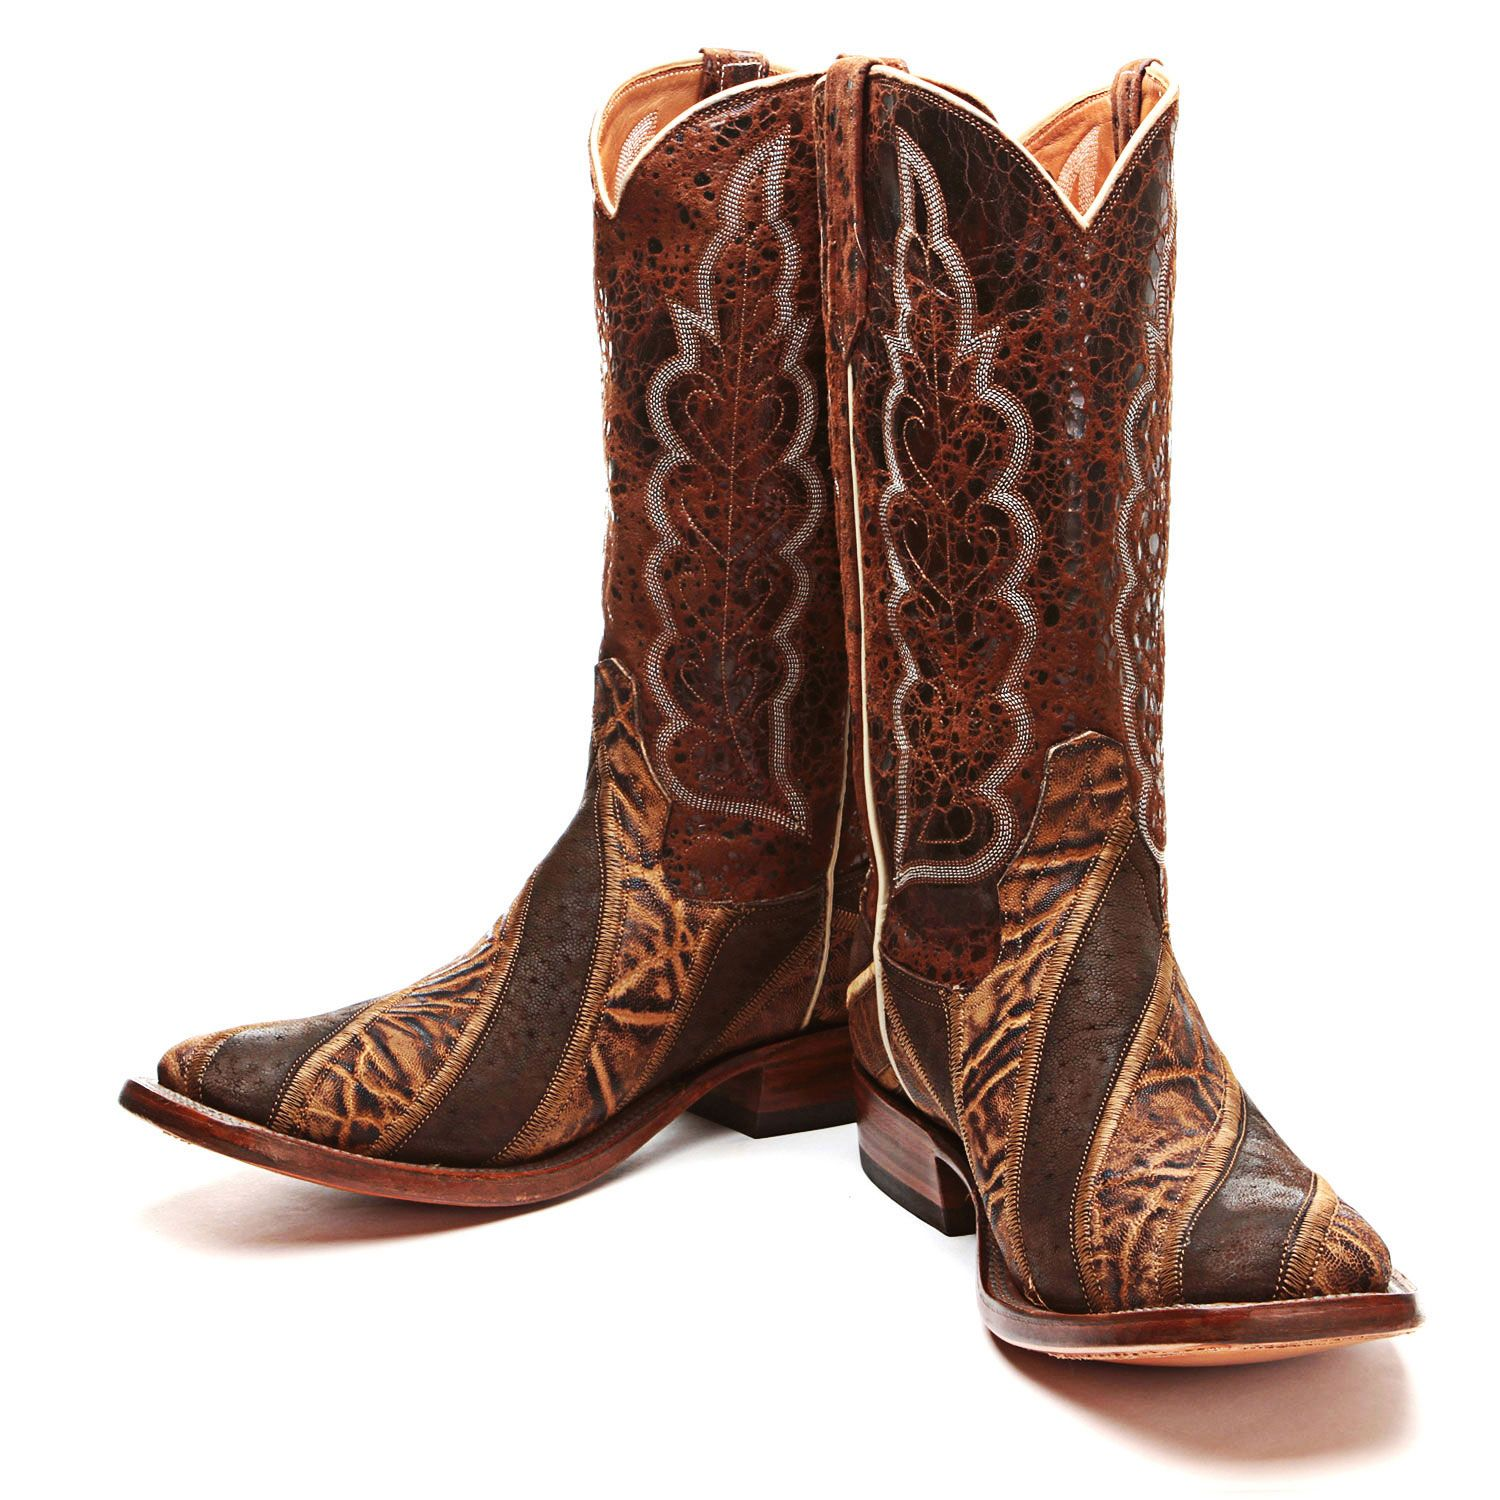 BootDaddy Collection with Rios of Mercedes Elephant Cowboy